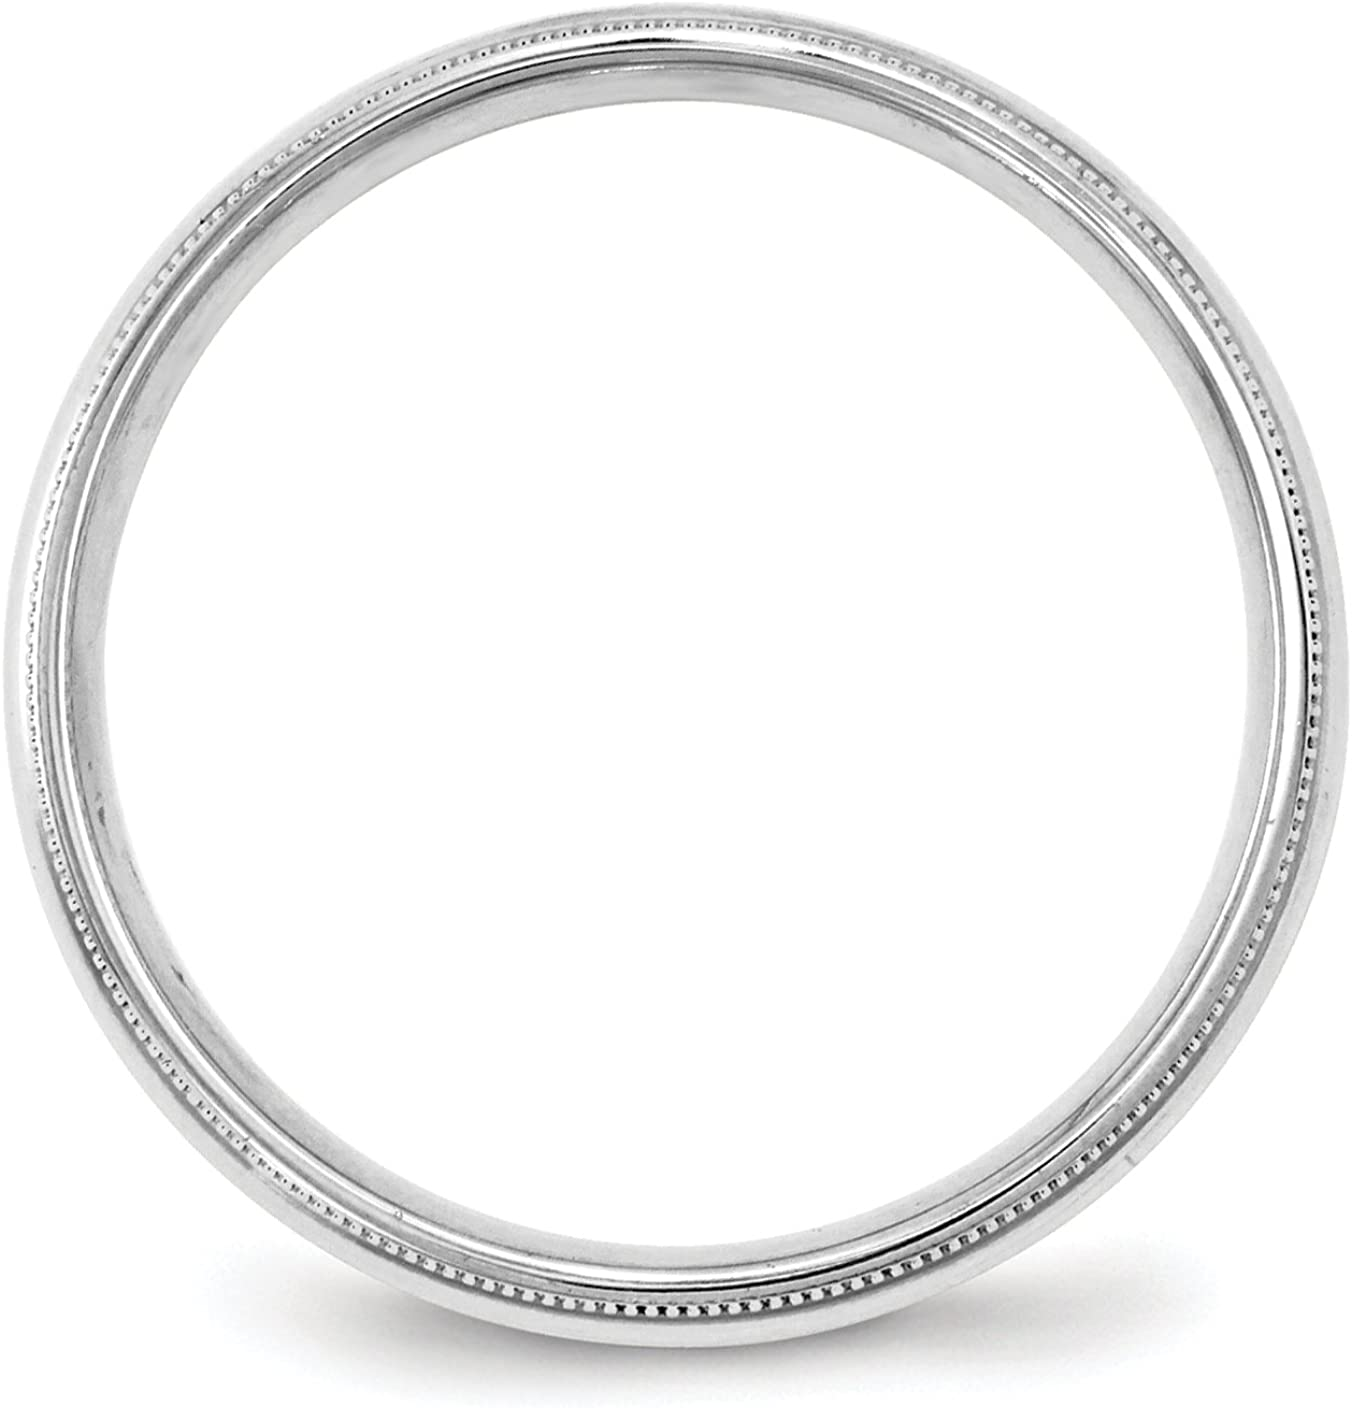 Solid 10k White Gold 4mm Milgrain Comfort Fit Band Finger Size